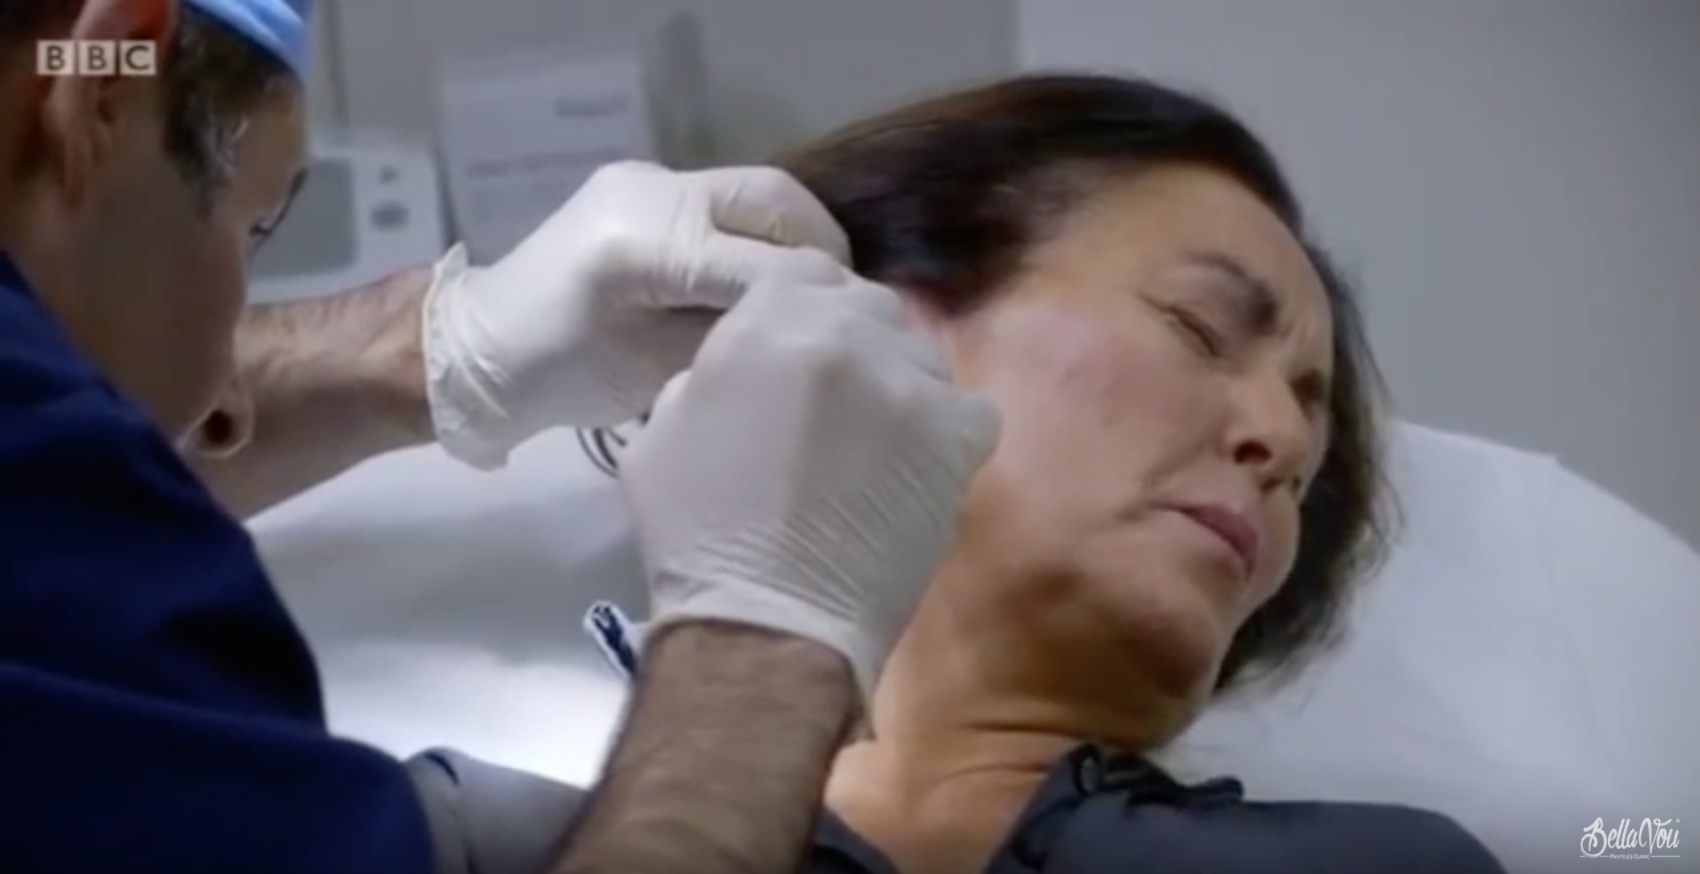 Facelifts and Fillers on BBC One with Bella Vou surgeon Amir Nakhdjevani performing Concept Facelift